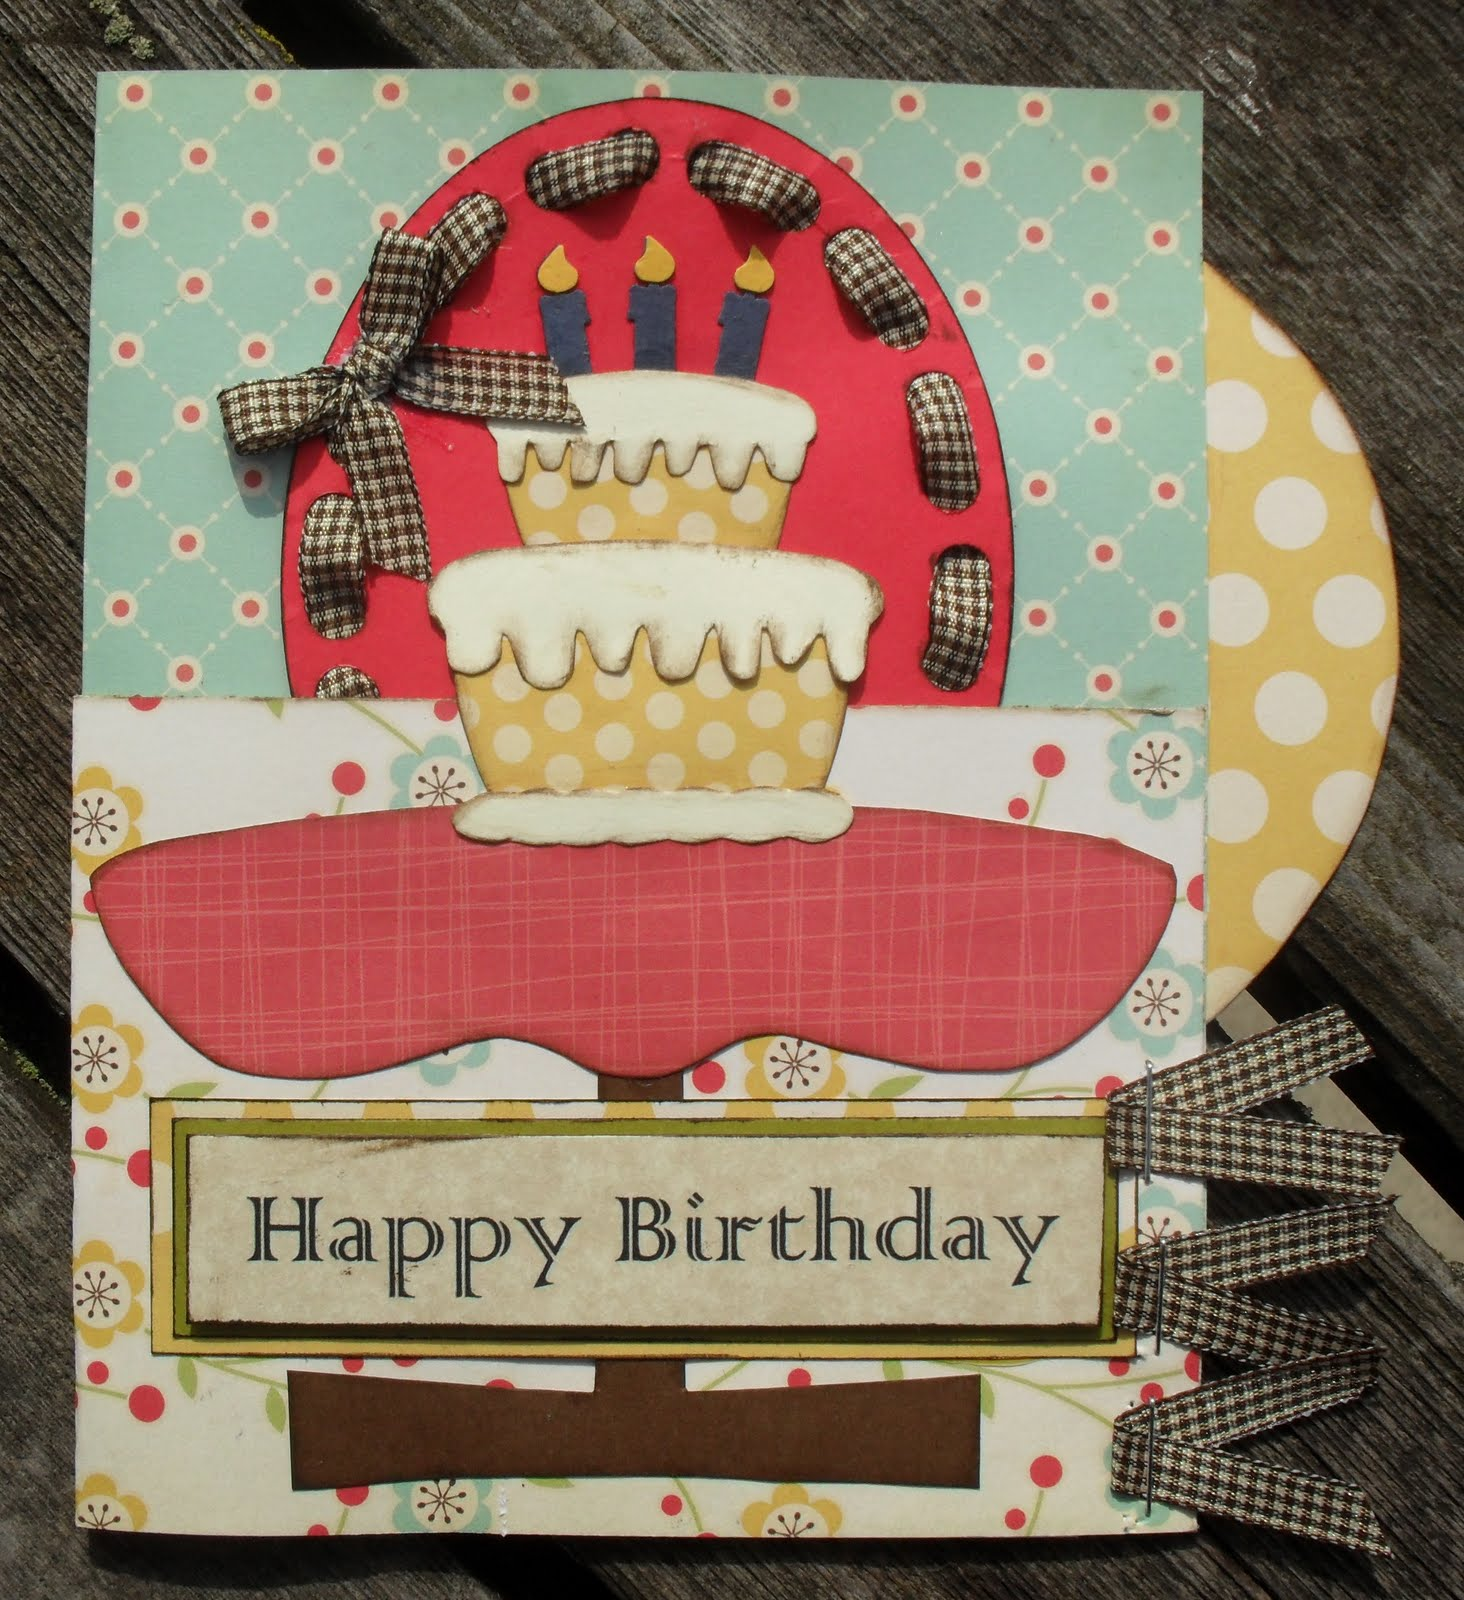 Celebrating ordinary moments happy birthday vintage card happy birthday vintage card bookmarktalkfo Image collections